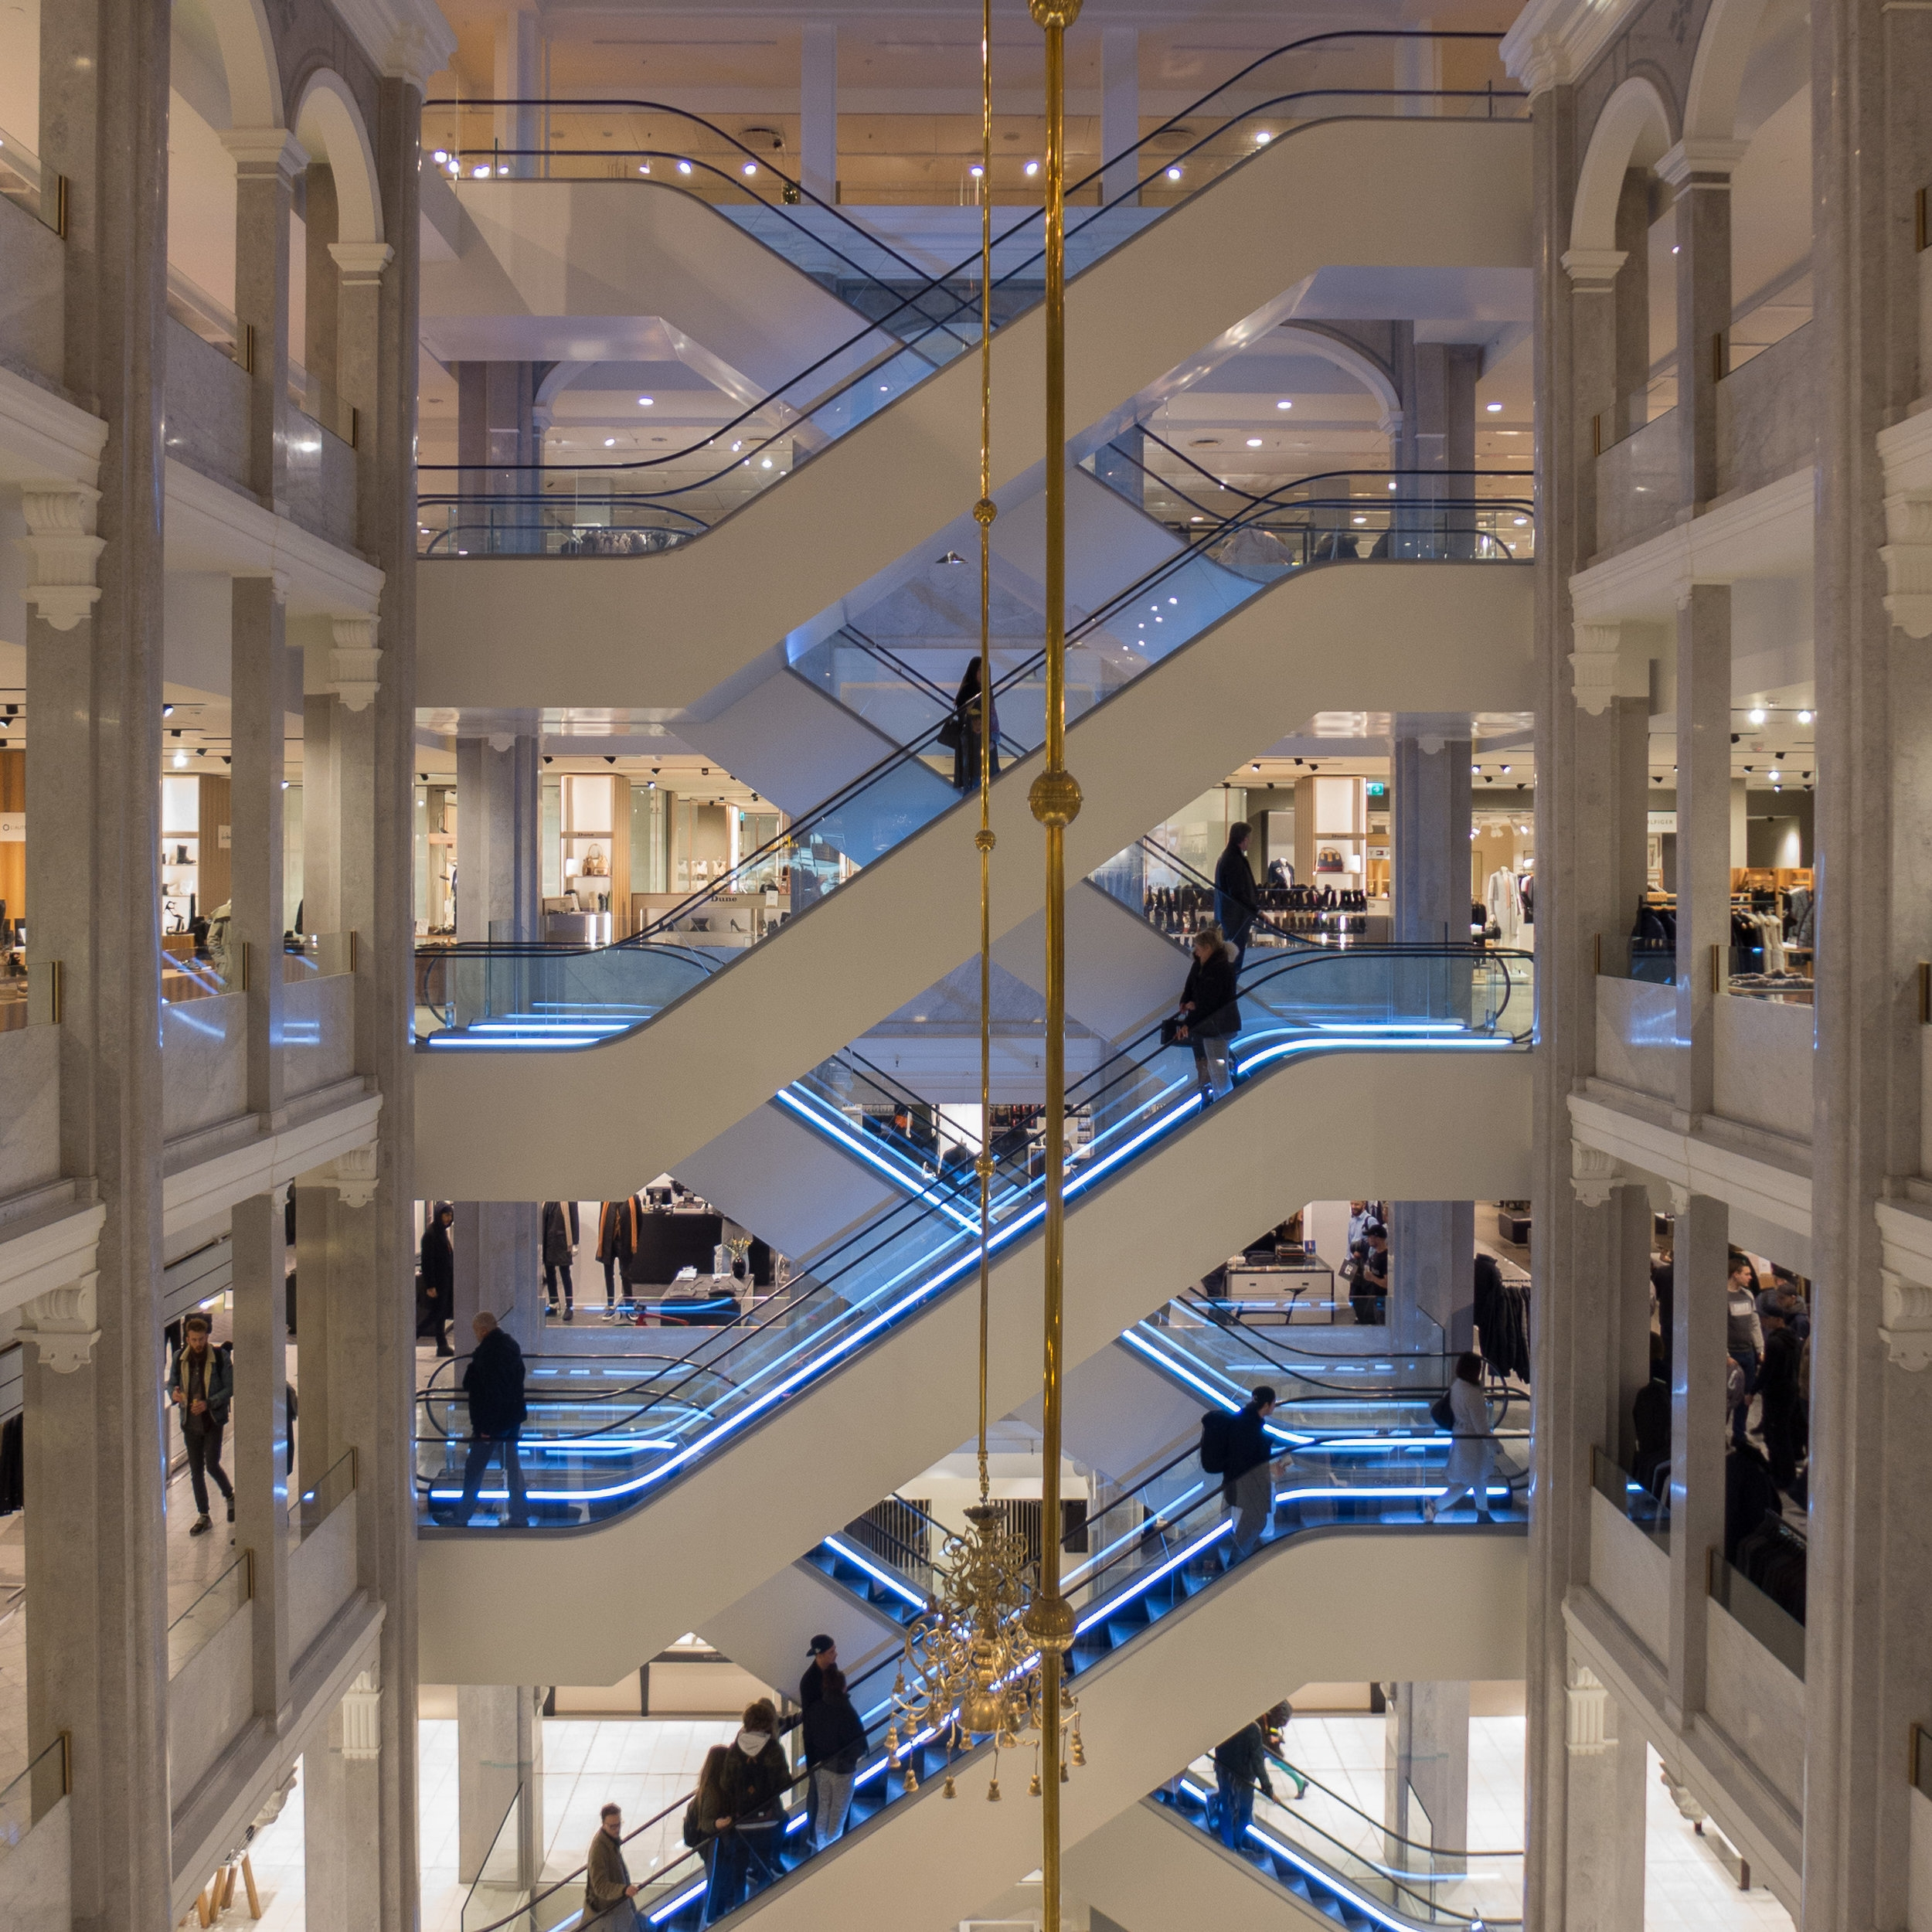 Just How Difficult Can It Be To Design A Staircase — Danish | Staircase Design For Commercial Buildings | Cylindrical Glass | Enclosed | Beautiful | Central Staircase | Sleek